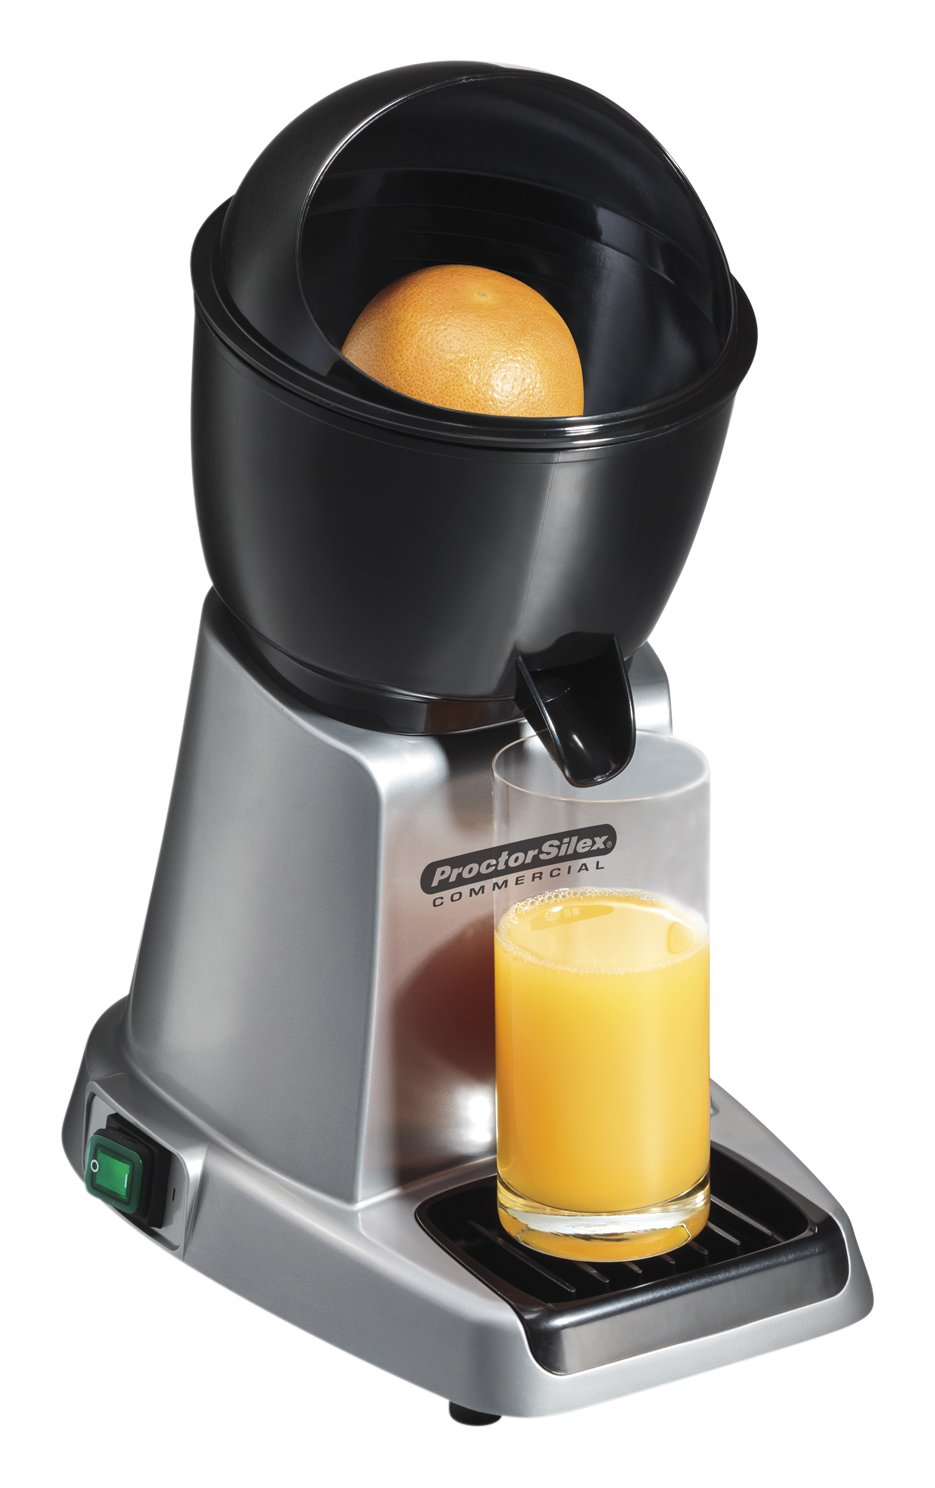 Proctor Silex Commercial 66900 Electric Citrus Juicer, 3 Reamer Sizes for Oranges, Lemons, Limes and Grapefruits, Removable Bowl, Strainer, Splashguard, Drip Tray, Black/Grey by Hamilton Beach (Image #1)